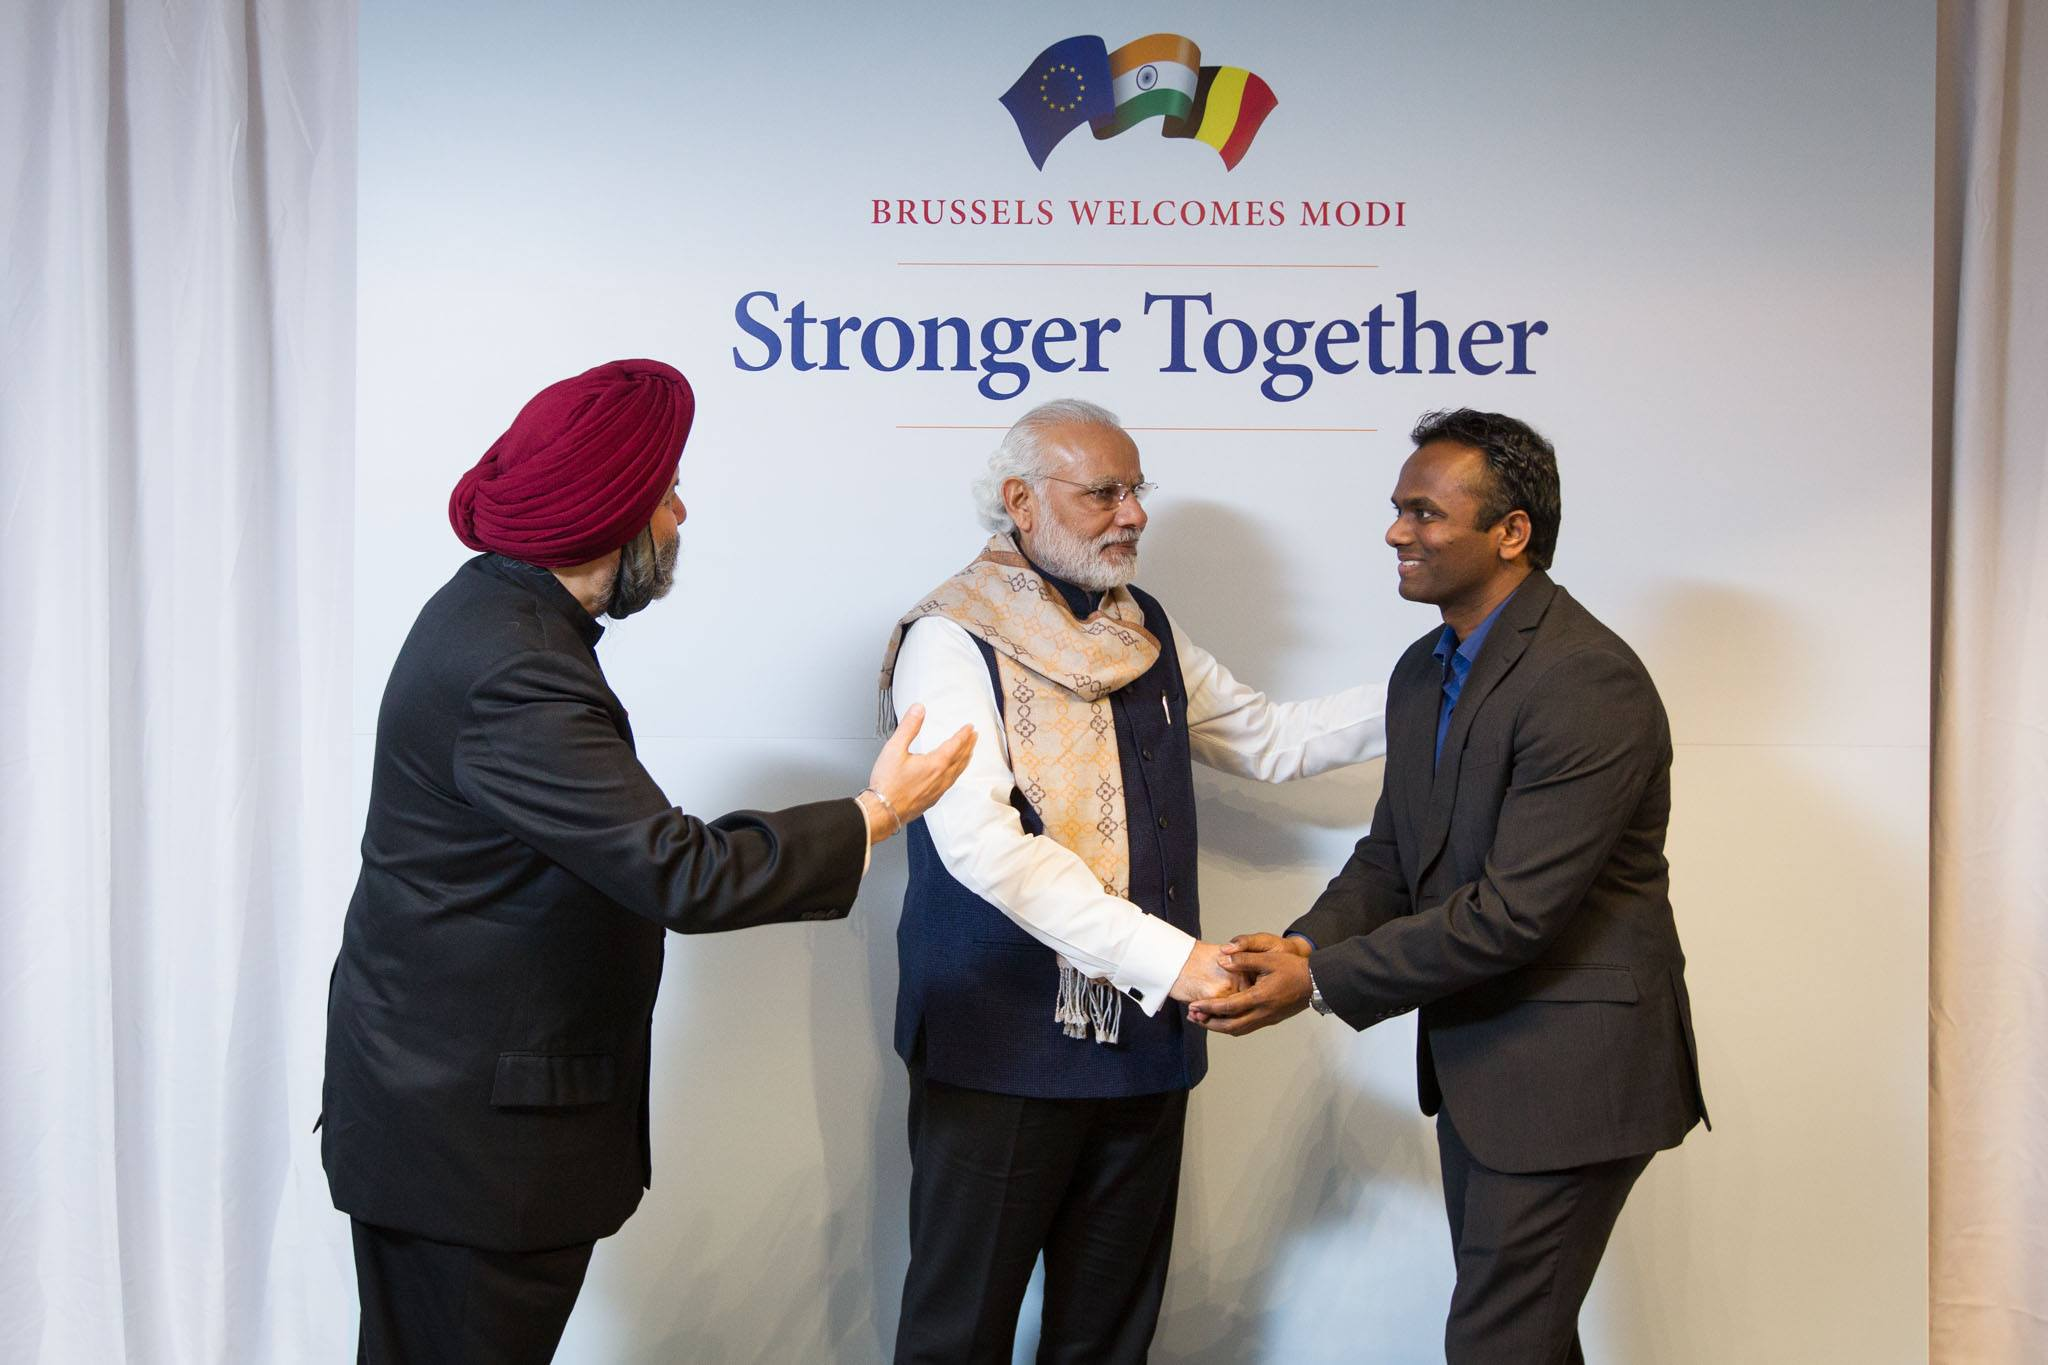 Meeting PM Narendra Modi as the CEO of INCO is one of the high points of my life: Sriman Narayana